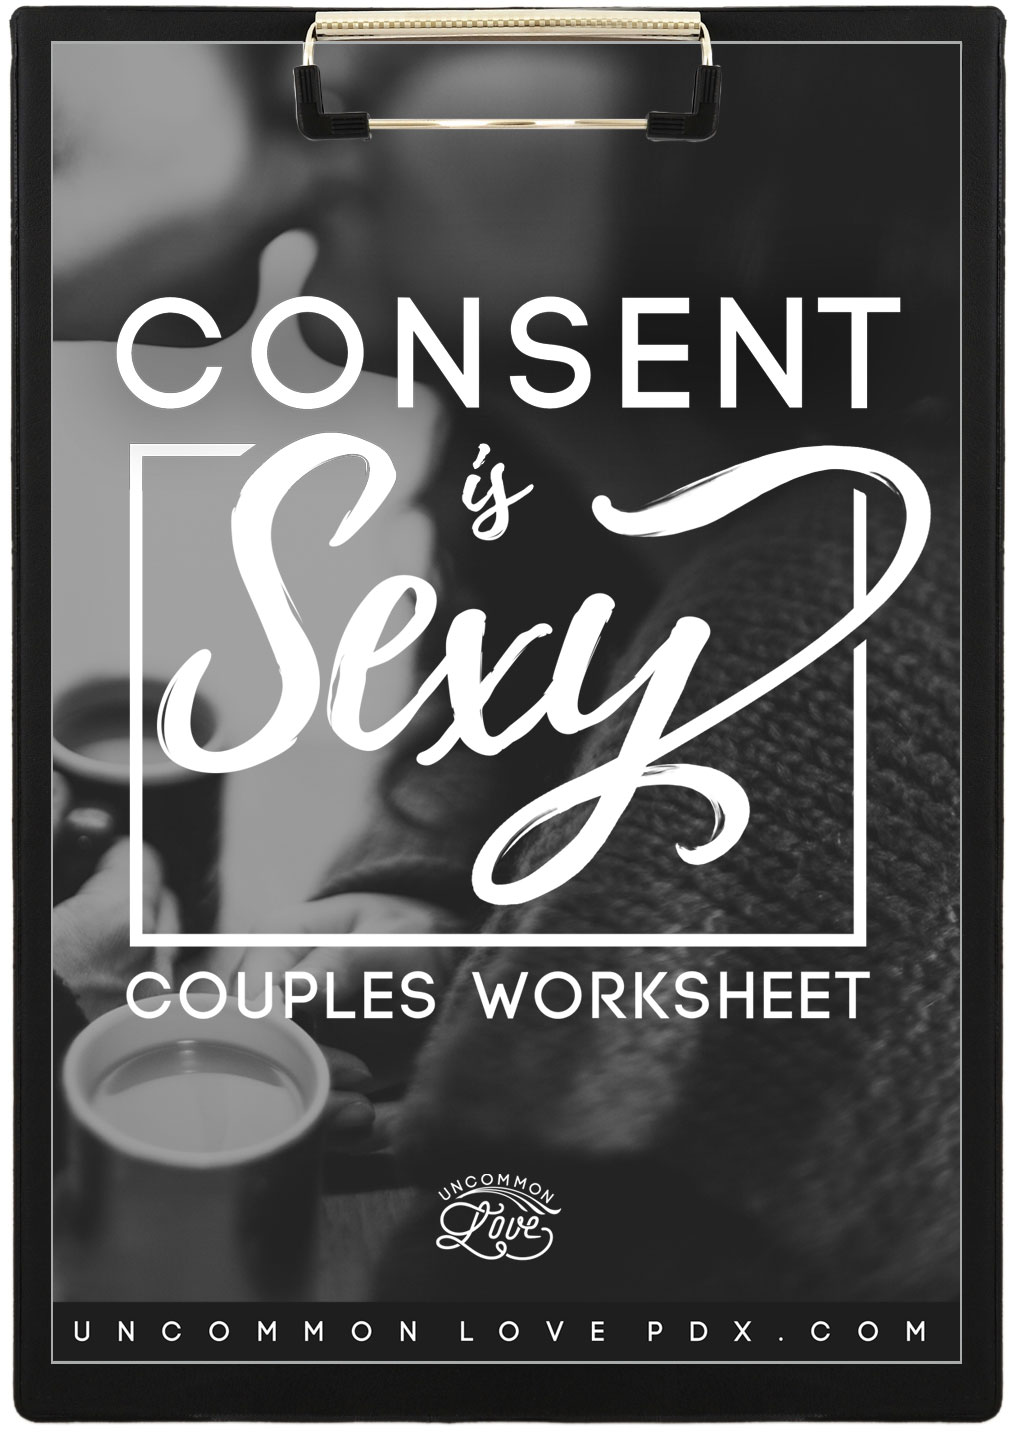 Consent Worksheet | Boundaries Worksheet | Couples Therapy Exercises